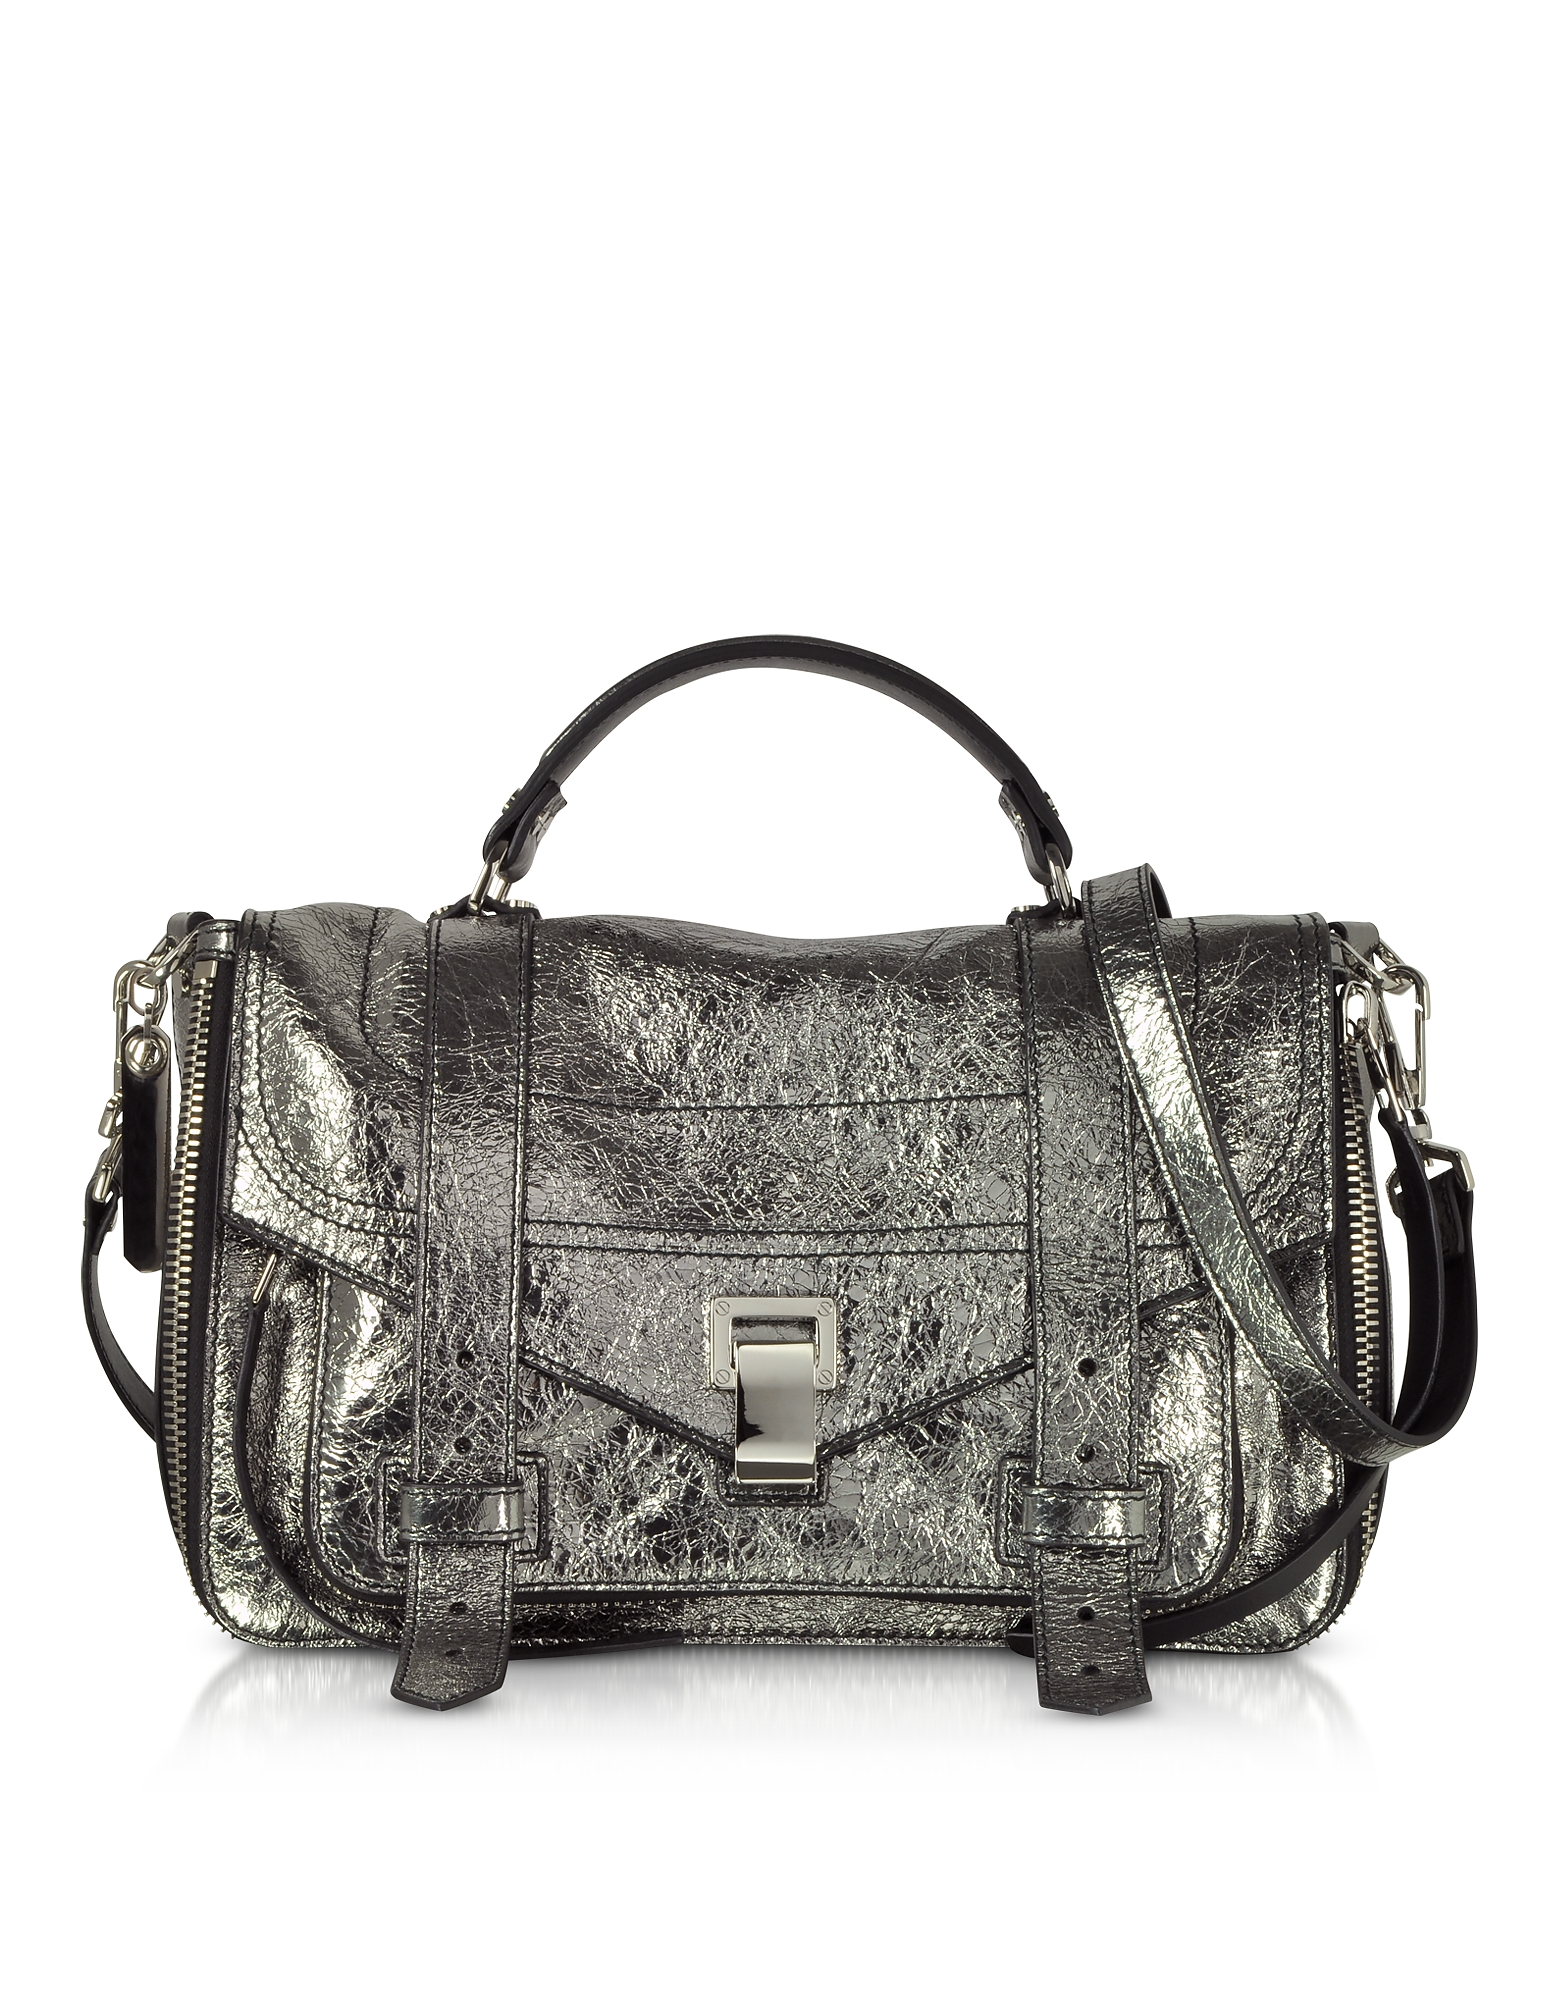 Proenza Schouler Handbags, PS1+ Metallic Leather Medium Zip Satchel Bag